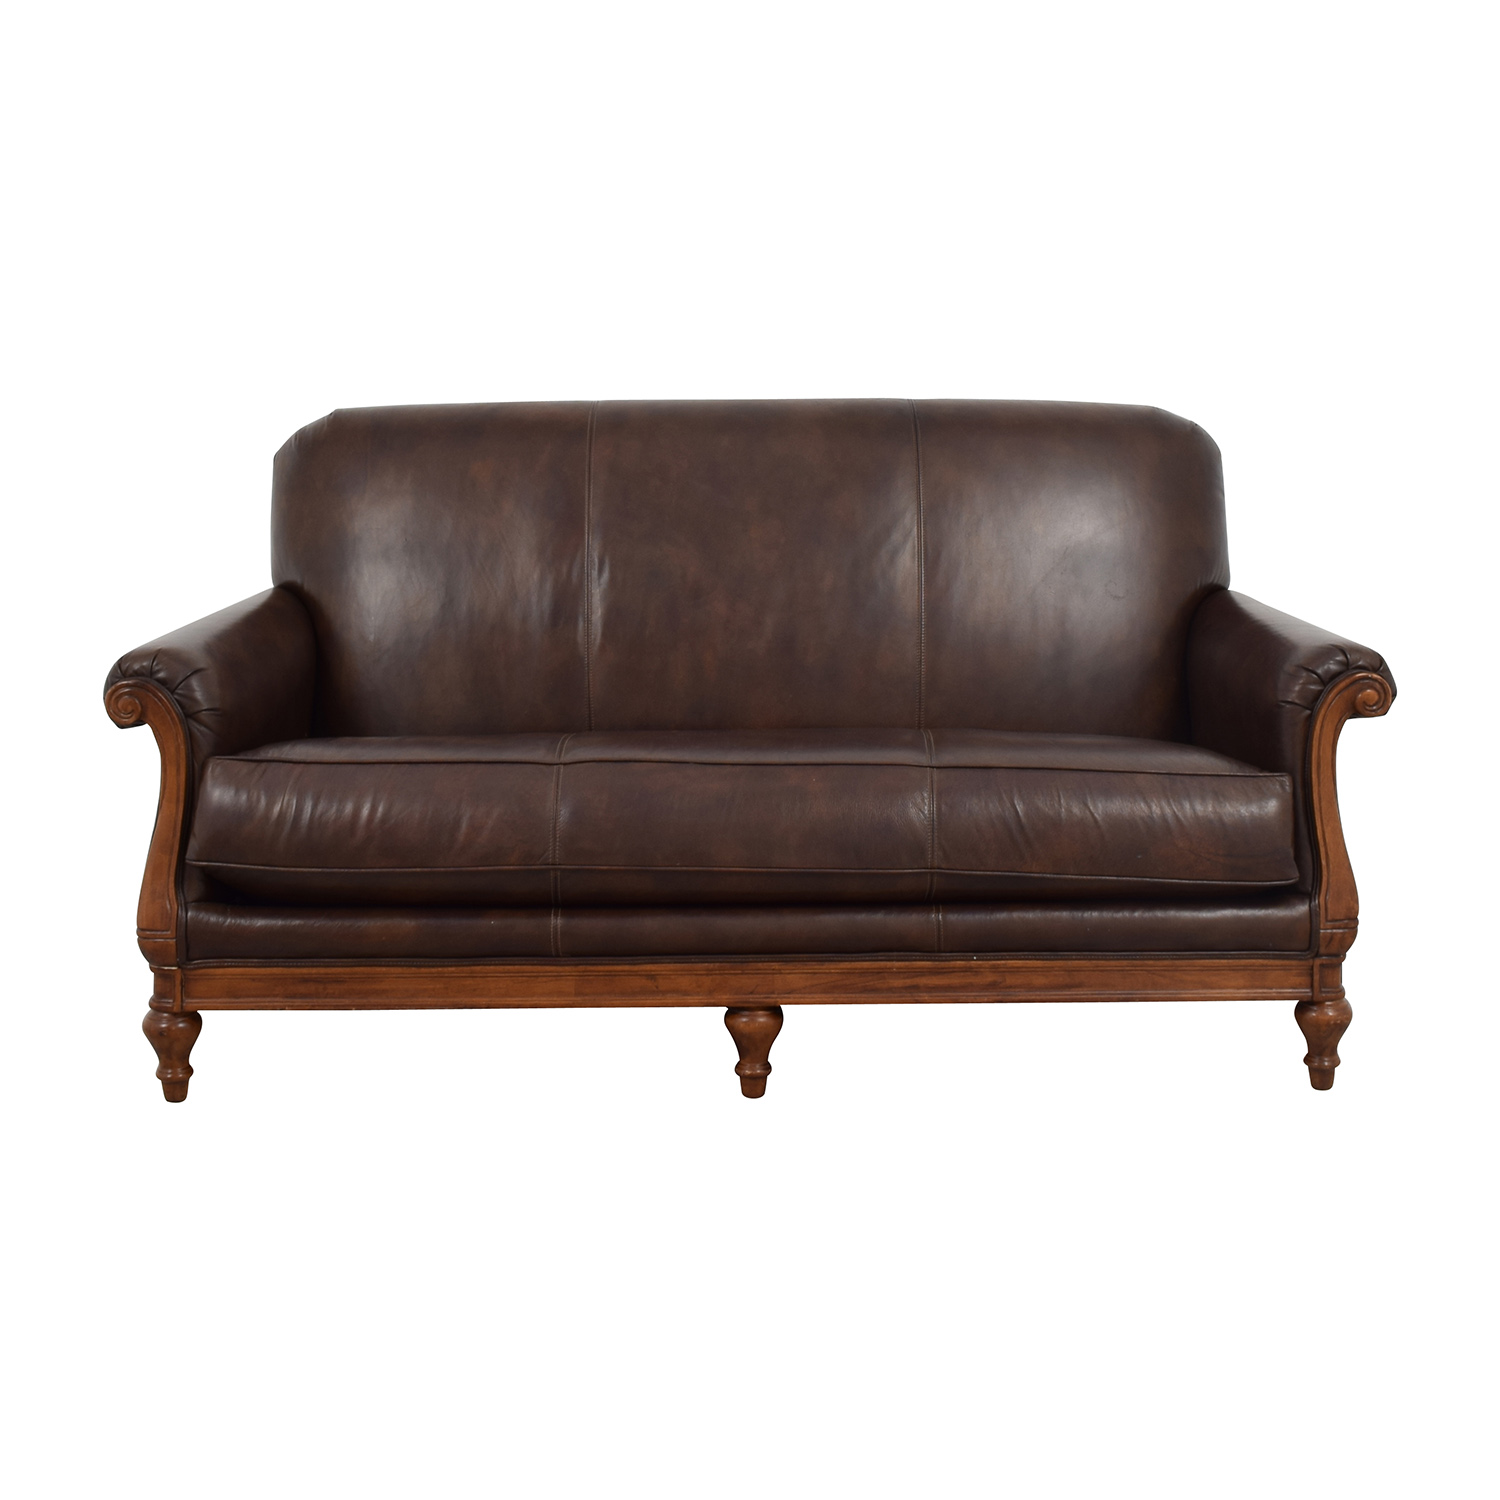 Wonderful Thomasville Thomasville Mid Century Leather Sofa Second Hand ...